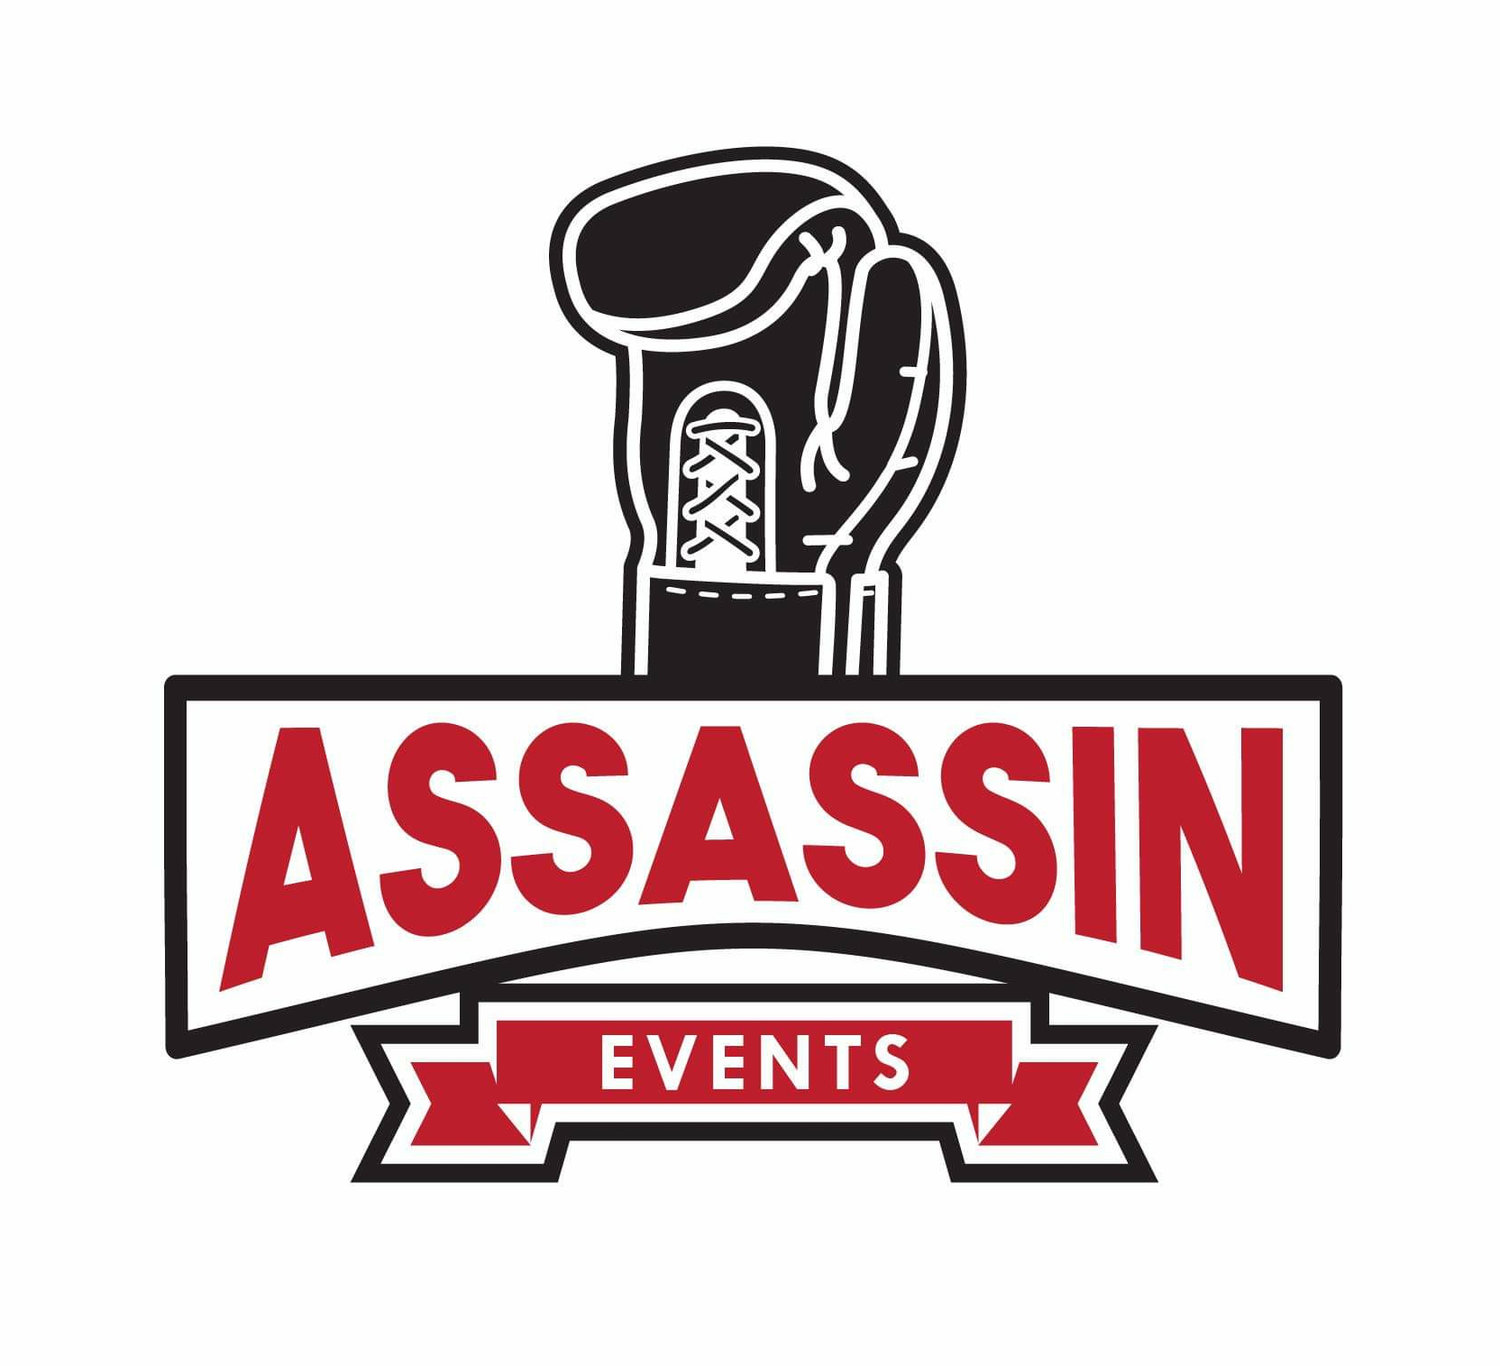 ASSASSIN EVENTS